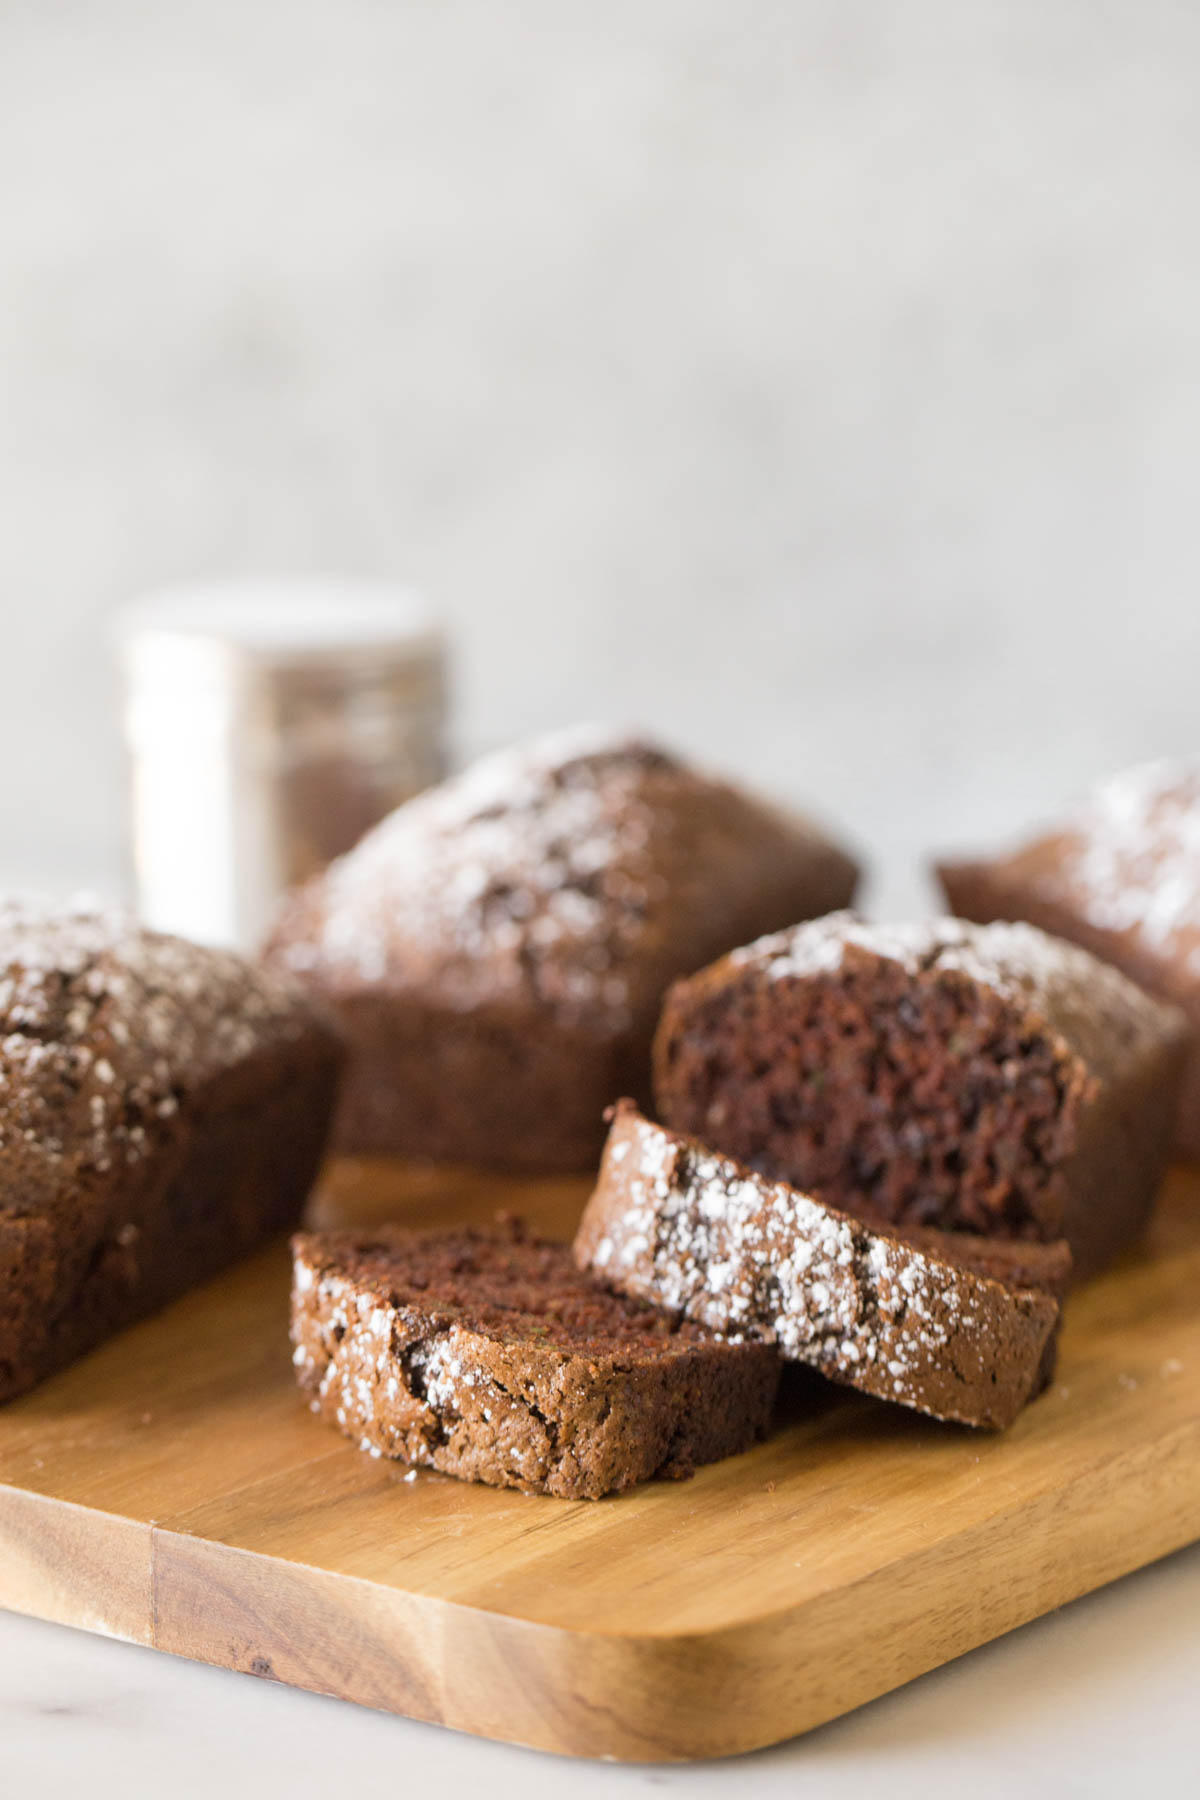 Loaves of Chocolate Zucchini Bread arranged on a wooden cutting board with a white background.